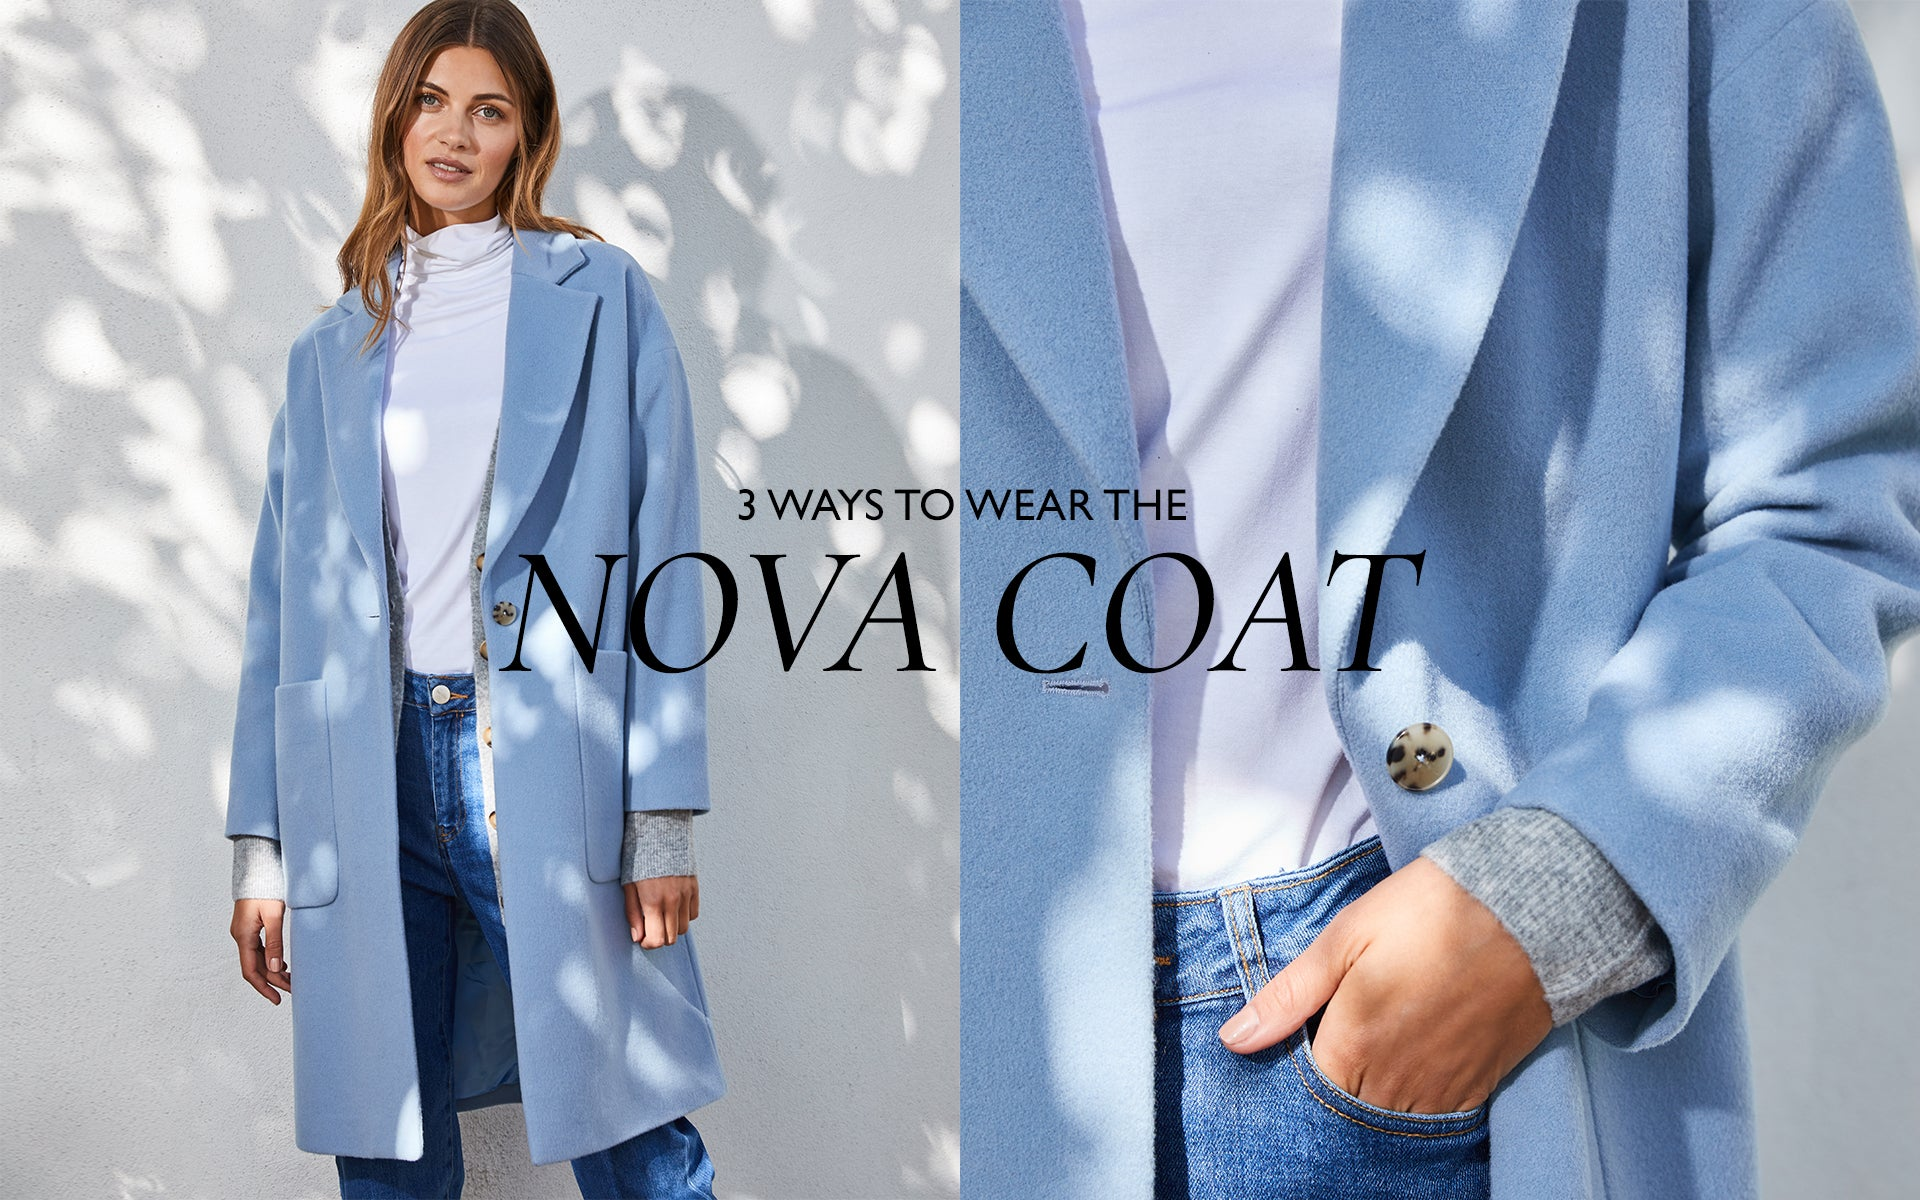 3 ways to wear the Nova Coat